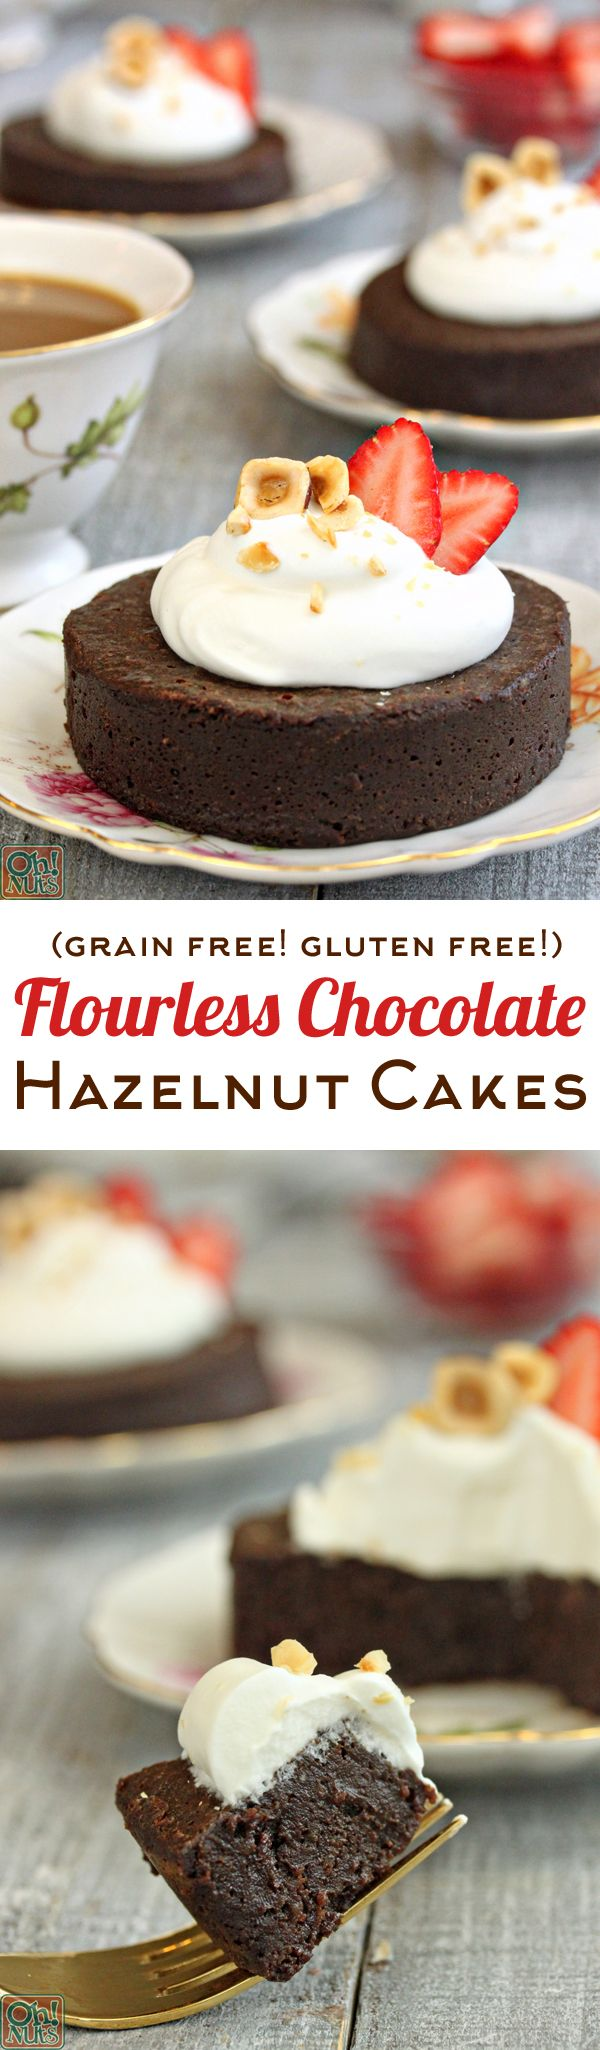 Flourless Chocolate Hazelnut Cakes - grain-free, gluten-free cakes made with hazelnuts and LOTS of chocolate! Rich, fudgy, and ultra-chocolatey, these little cakes are for seriou chocoholics!